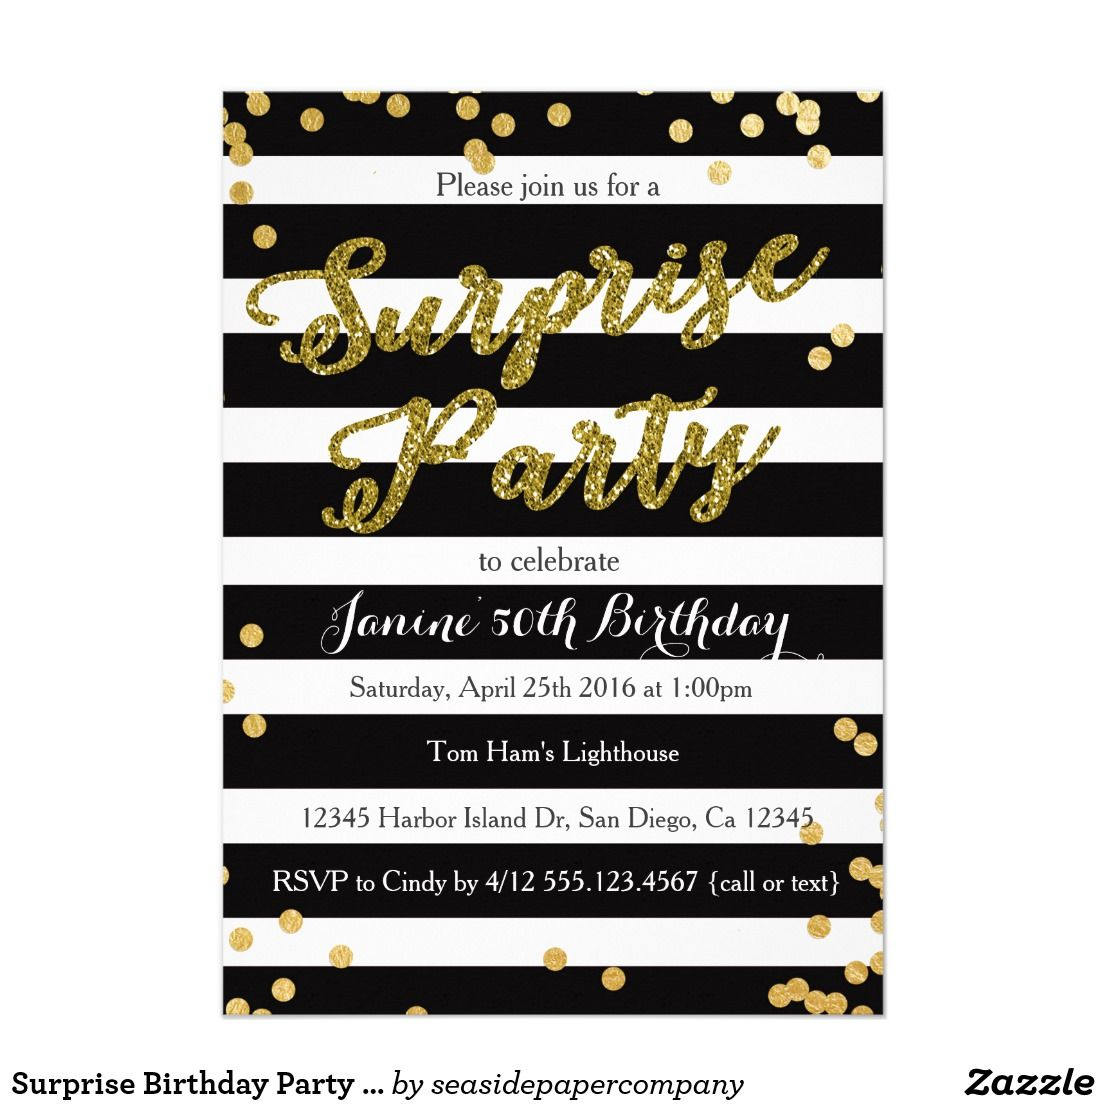 Surprise birthday party invitation invitation cards pinterest